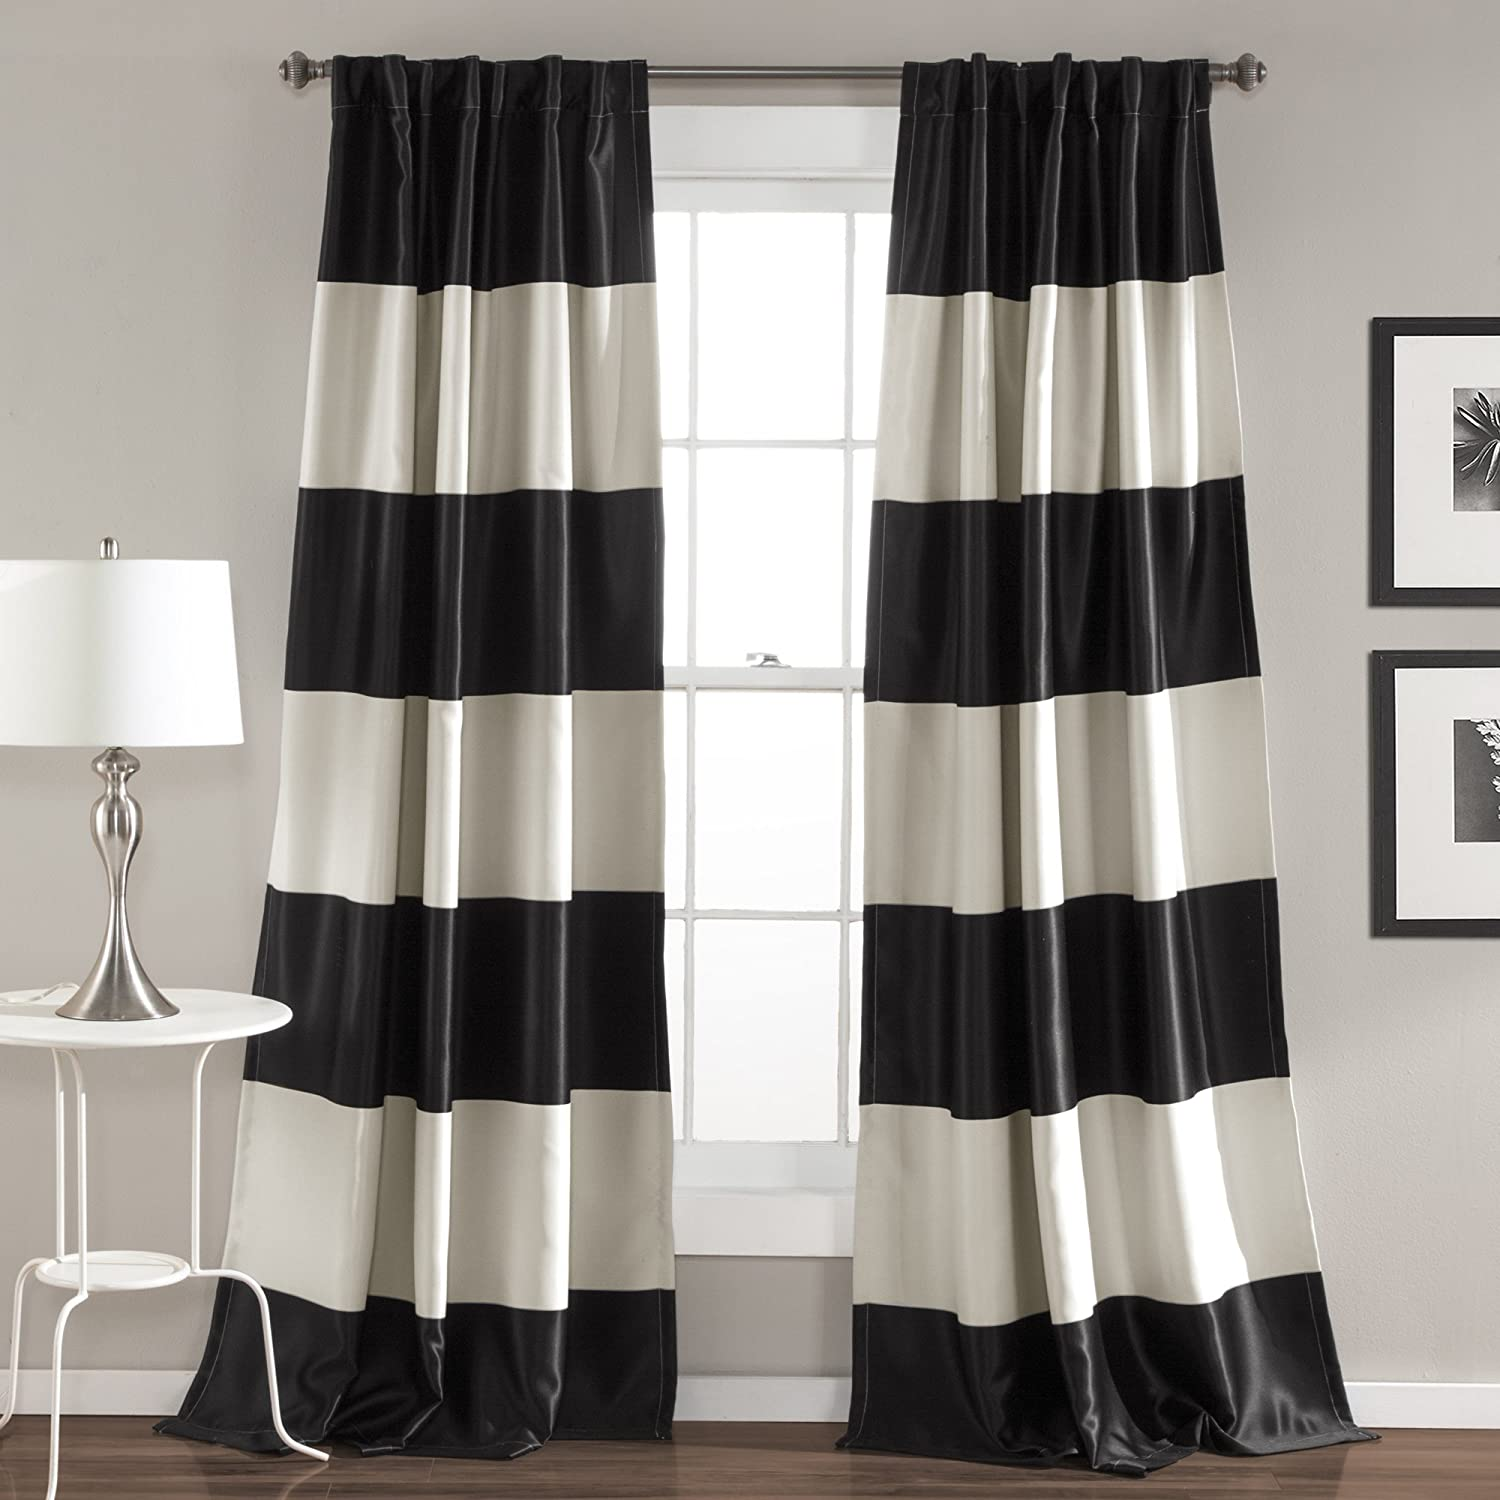 Lush Decor Montego Striped Window Curtains Panel Set For Living Dining Room Bedroom Pair 84 X 52 Black Amazon Ca Home Kitchen